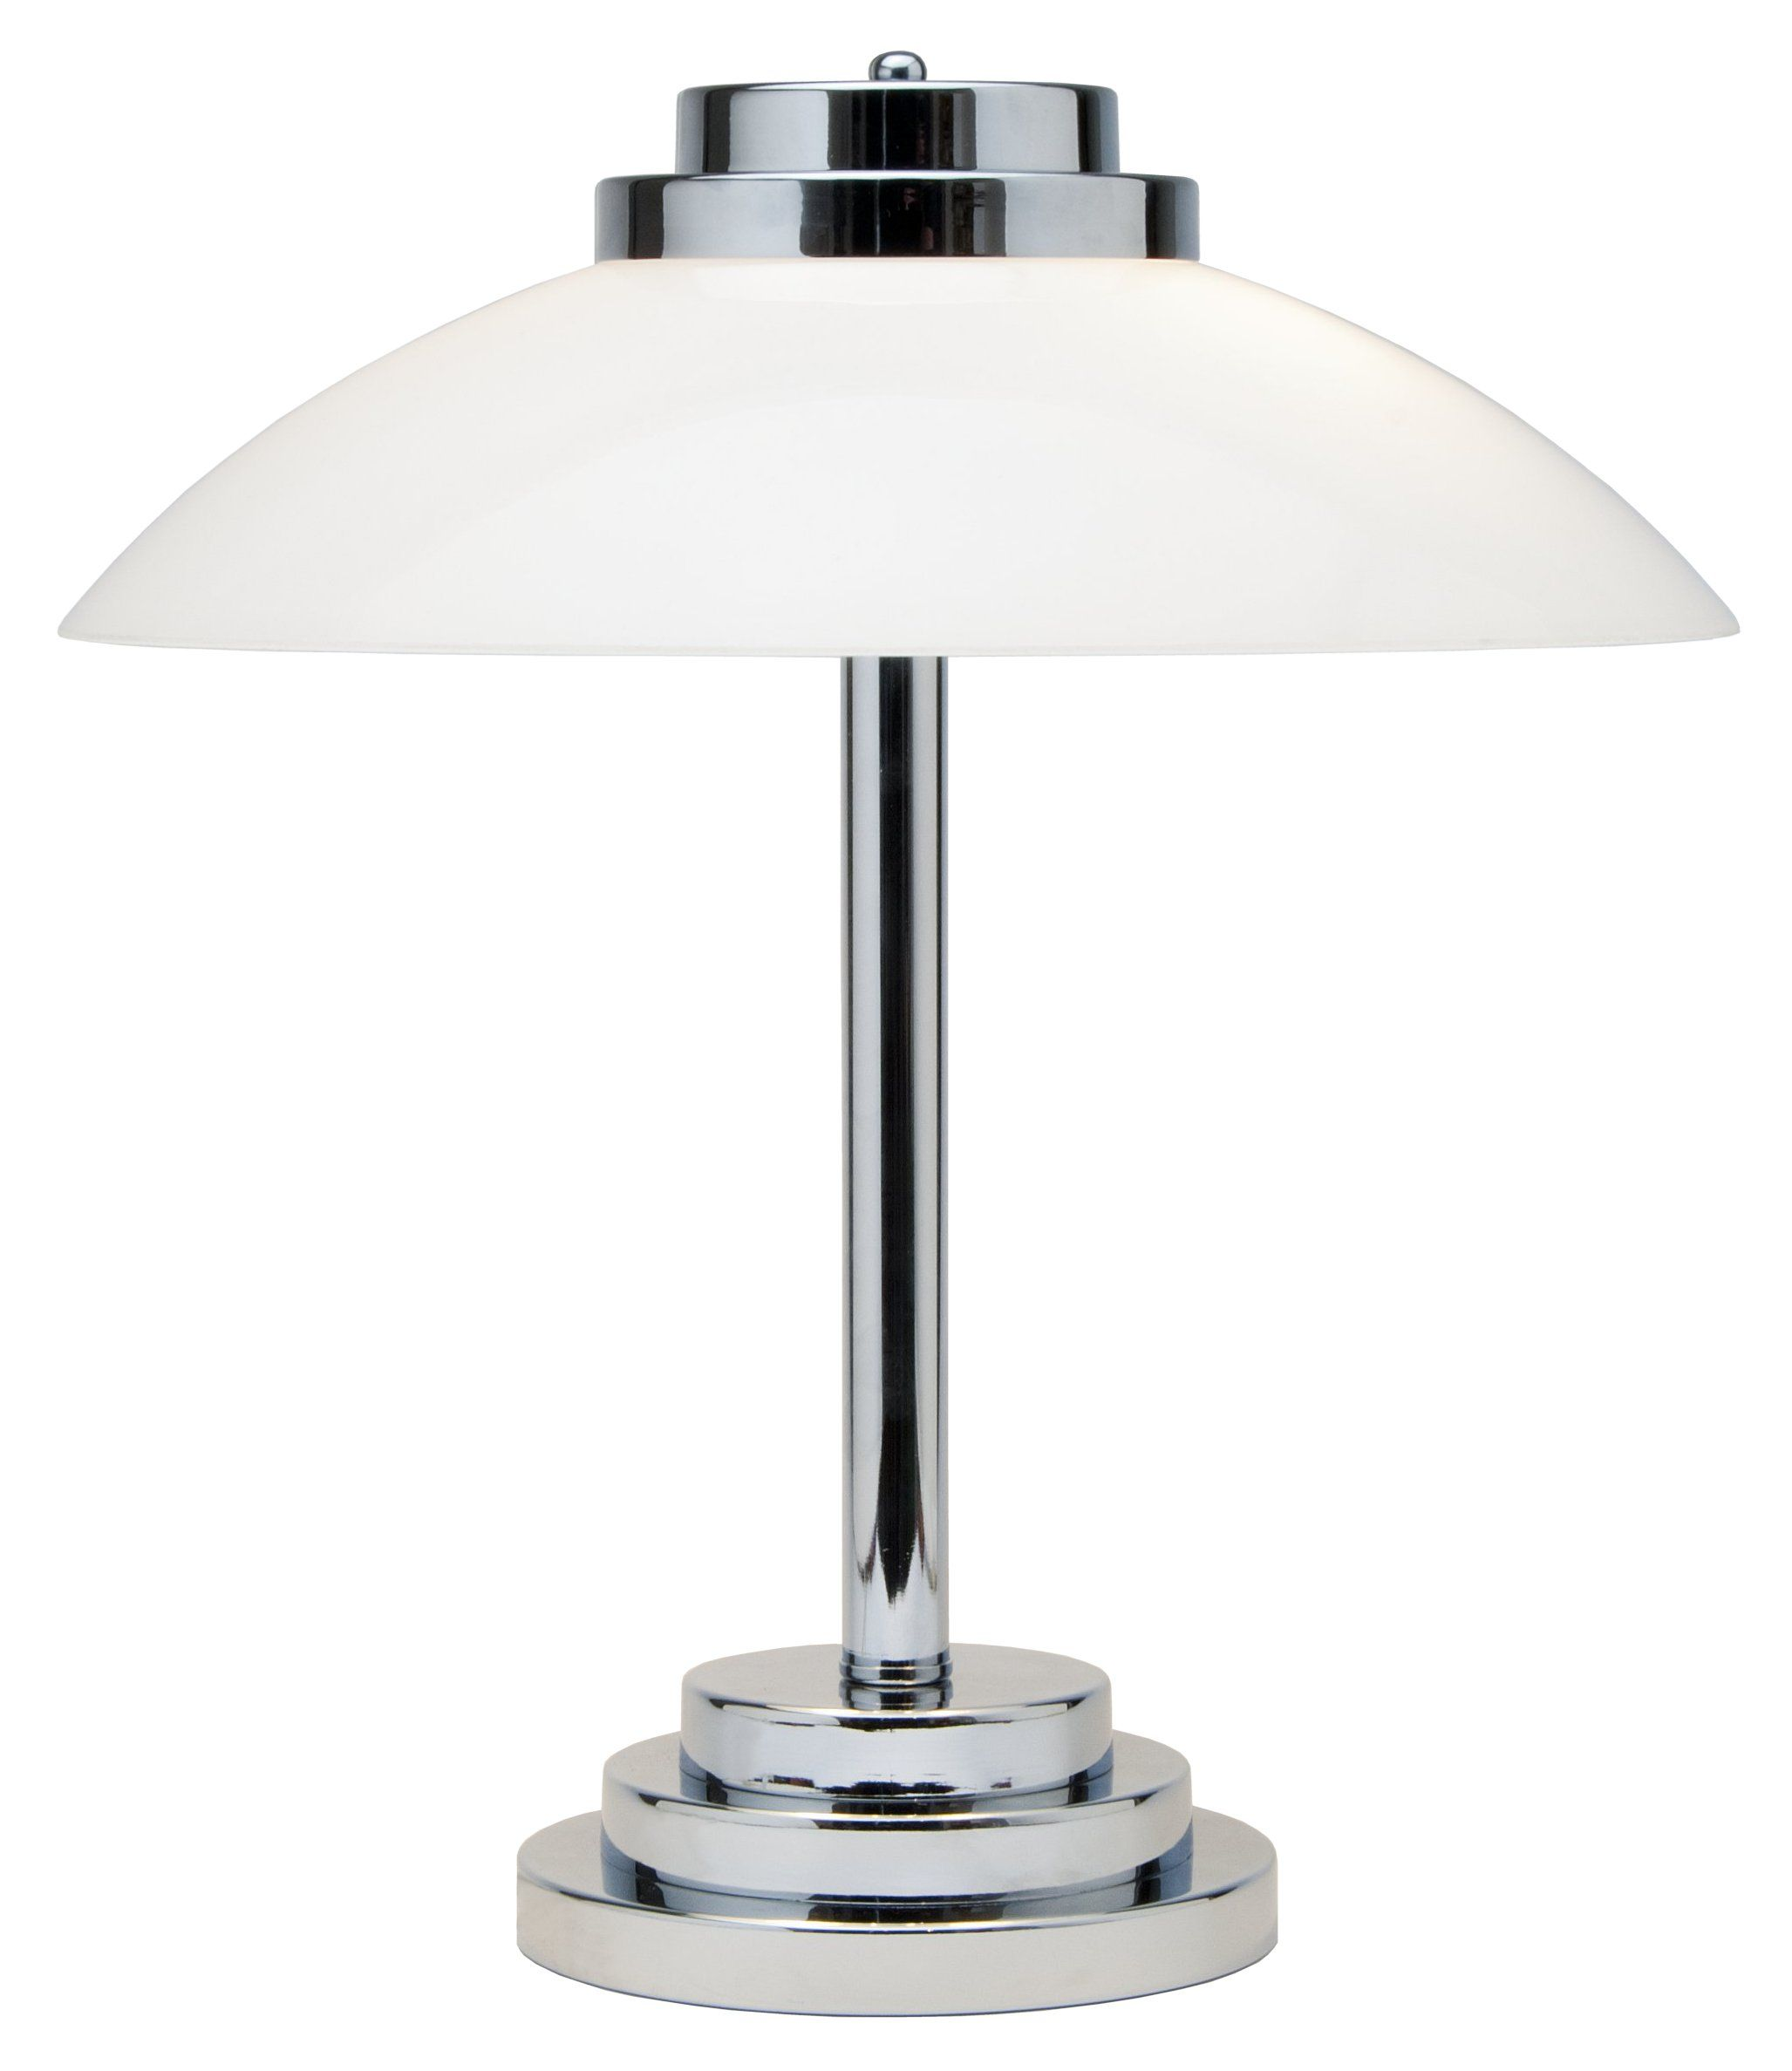 Art deco inspired chrome table lamp about the house pinterest art deco inspired chrome table lamp geotapseo Gallery